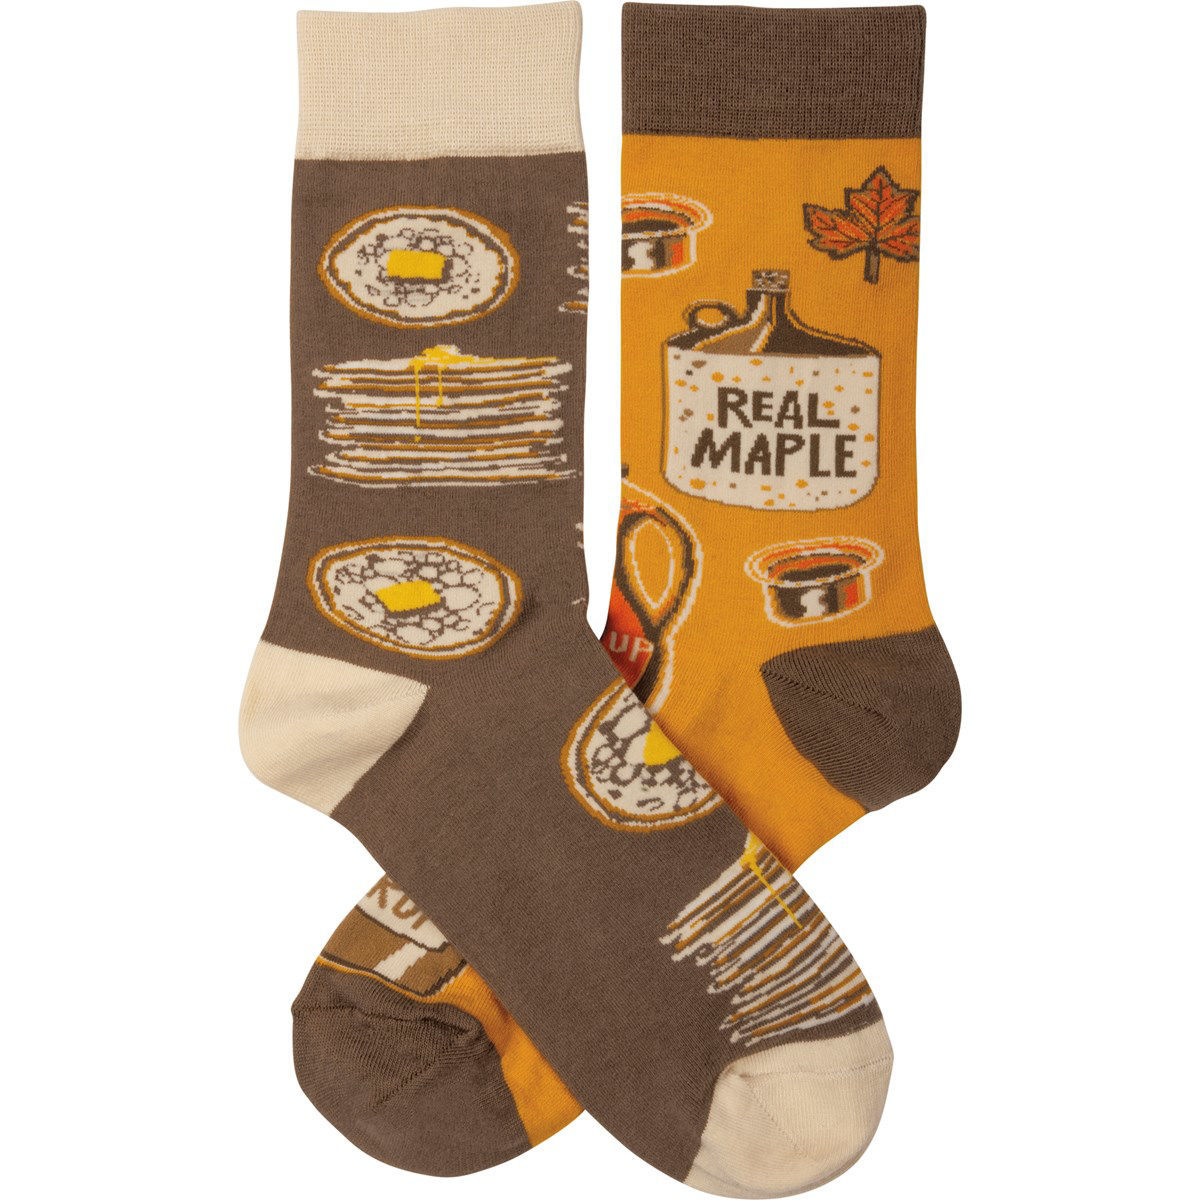 Pancakes & Syrup Socks by Primitives by Kathy